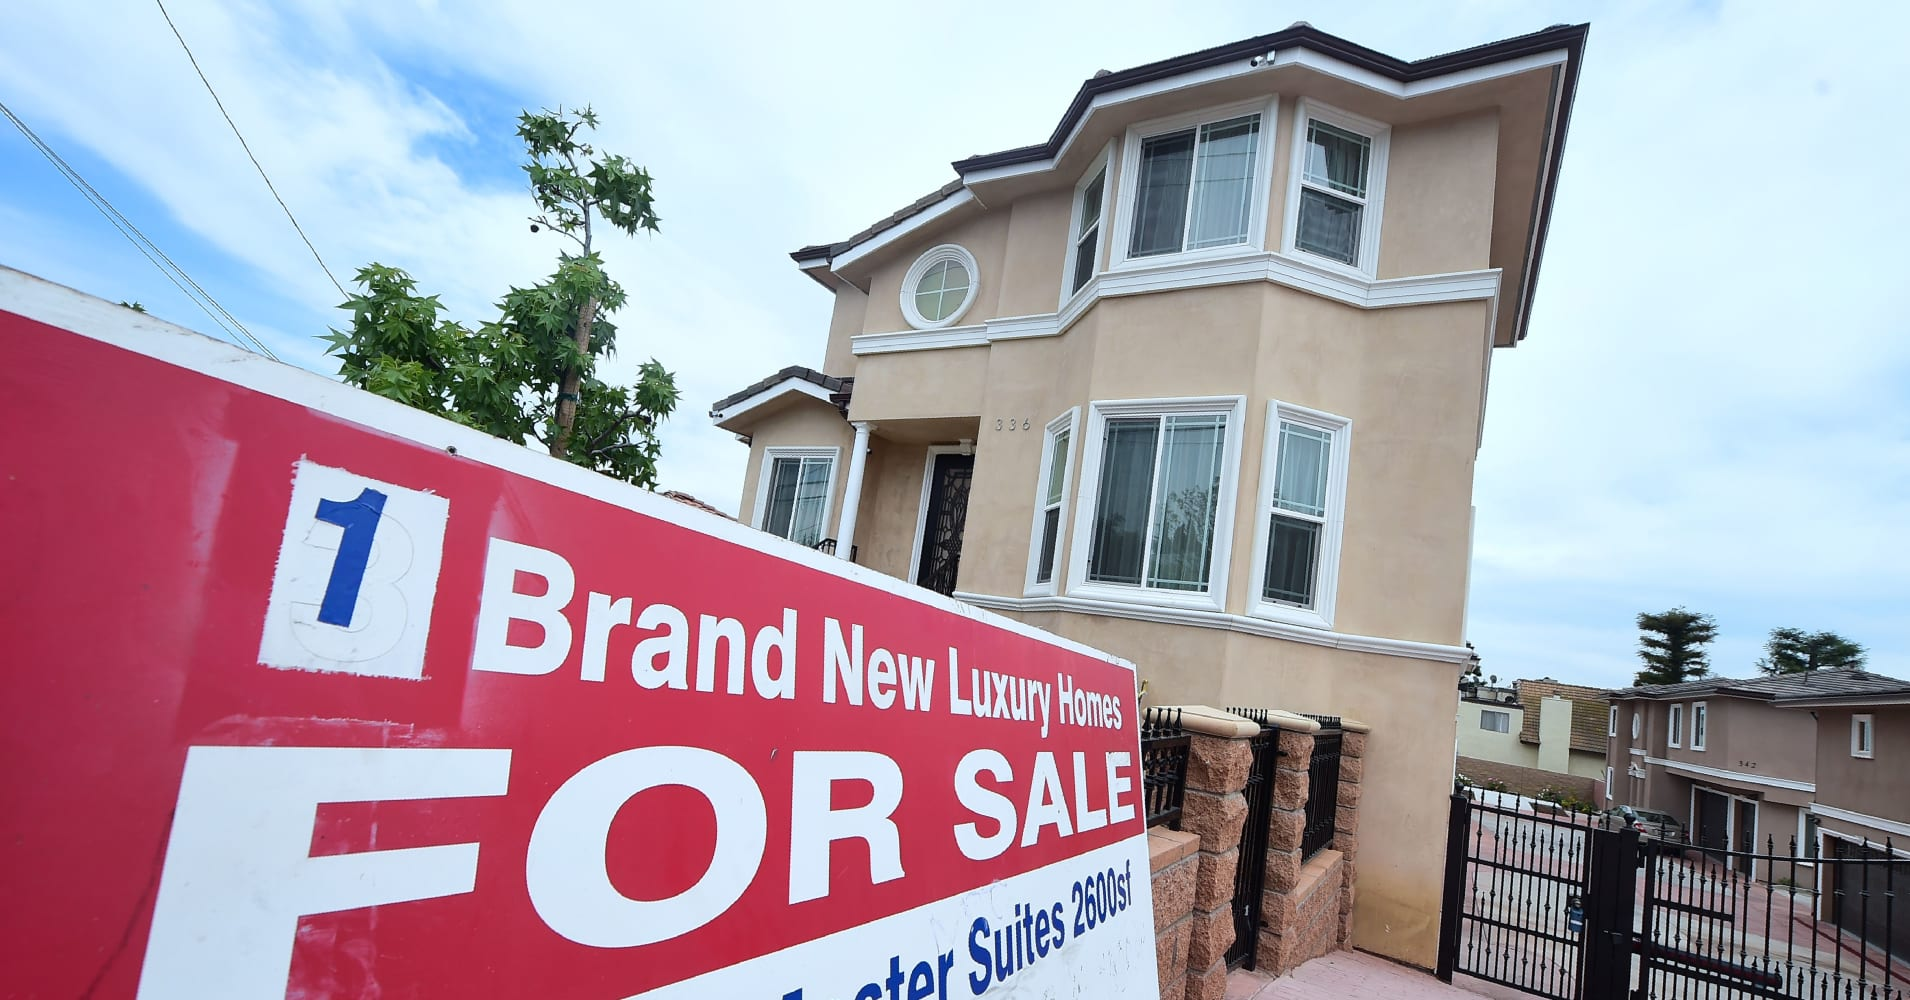 cnbc.com - Diana Olick - Mortgage rates are breaking to new lower territory, and they could stay there for months